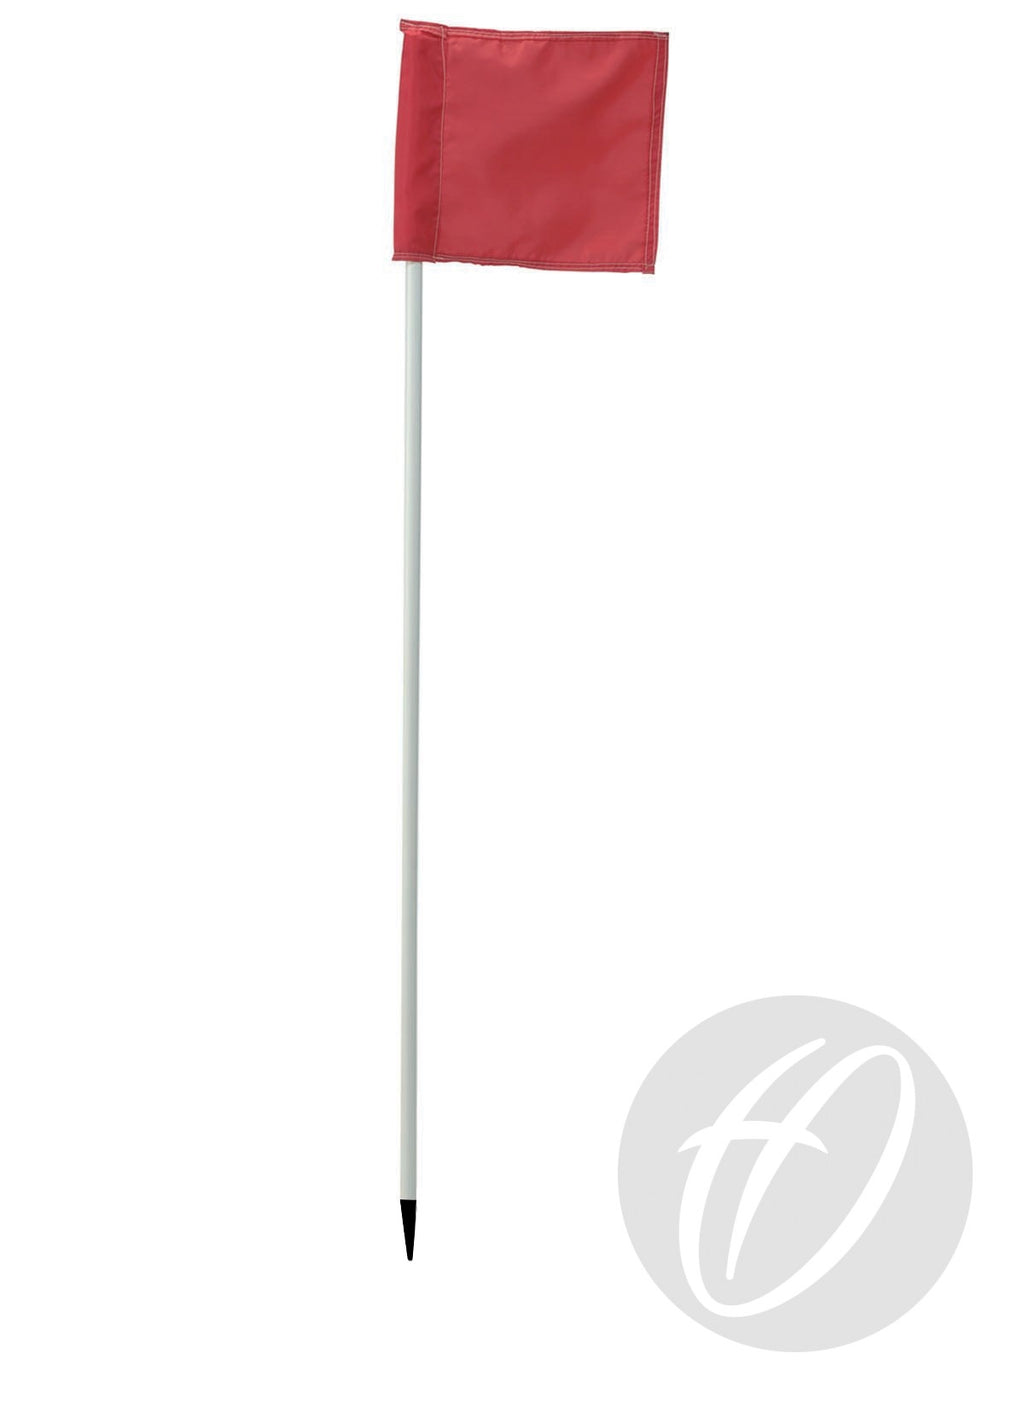 Flag Pole with Spike